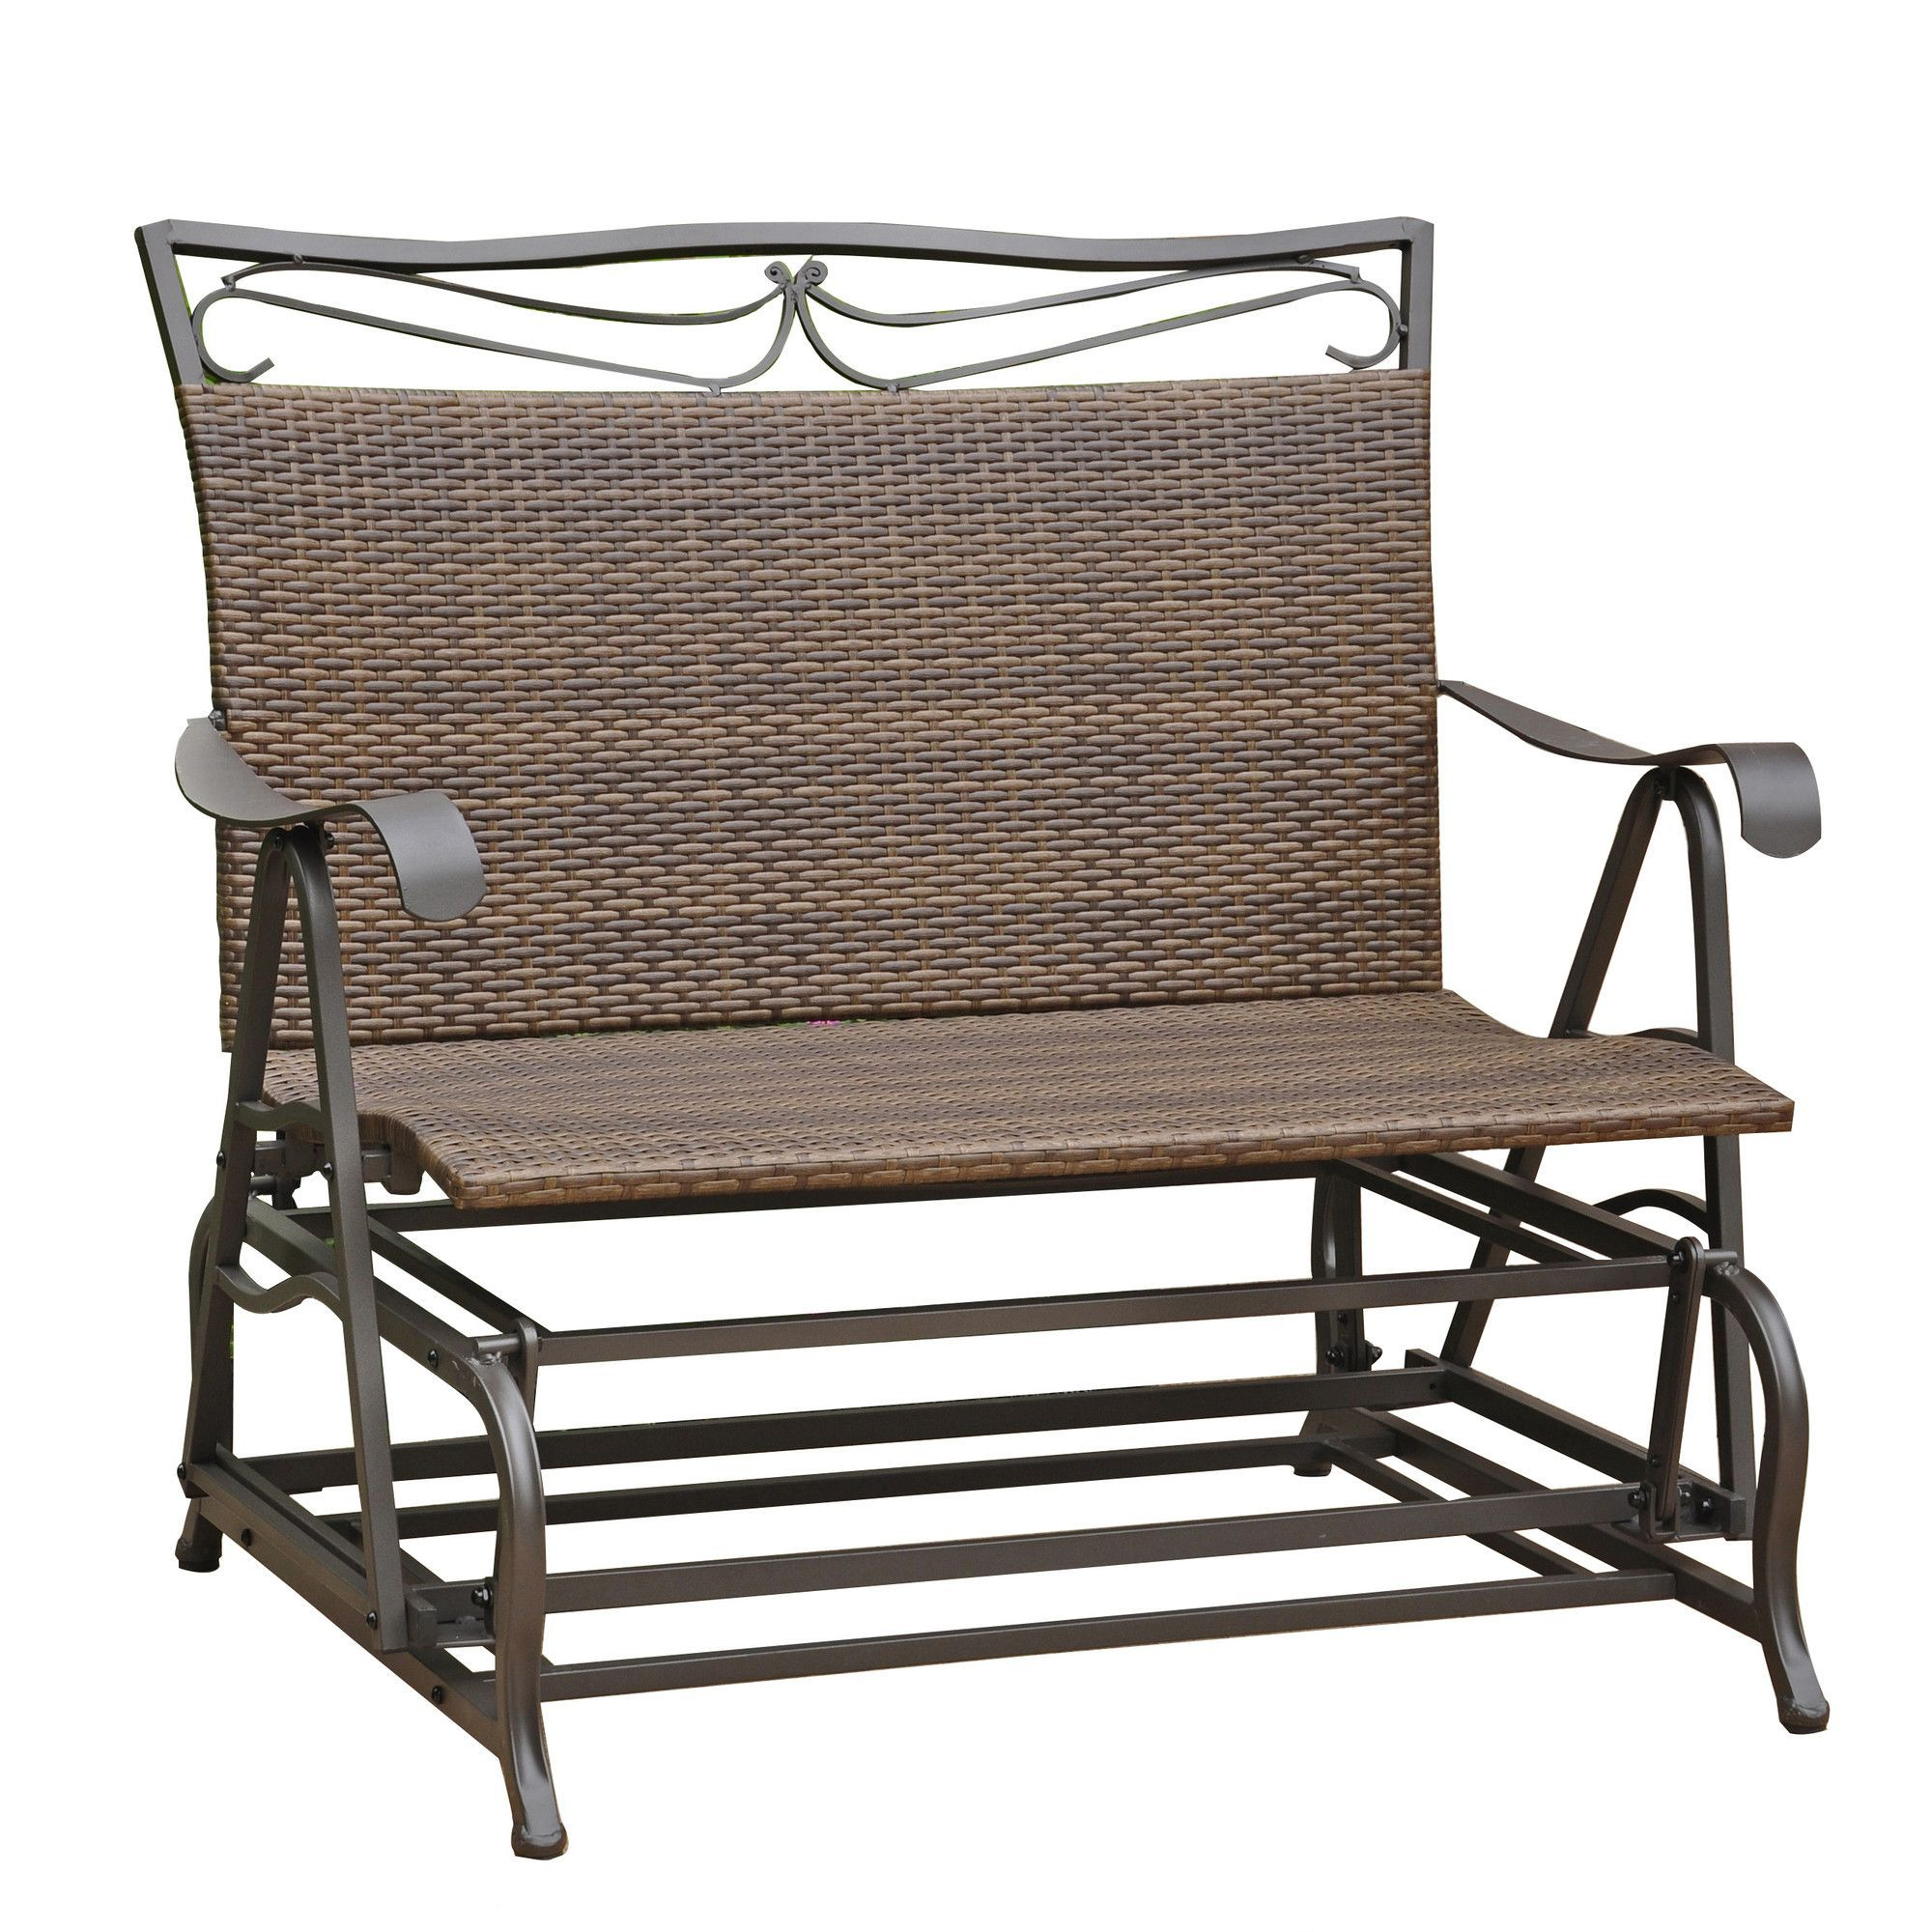 Patio Glider Regarding Well Known Outdoor Patio Swing Glider Bench Chair S (View 24 of 30)